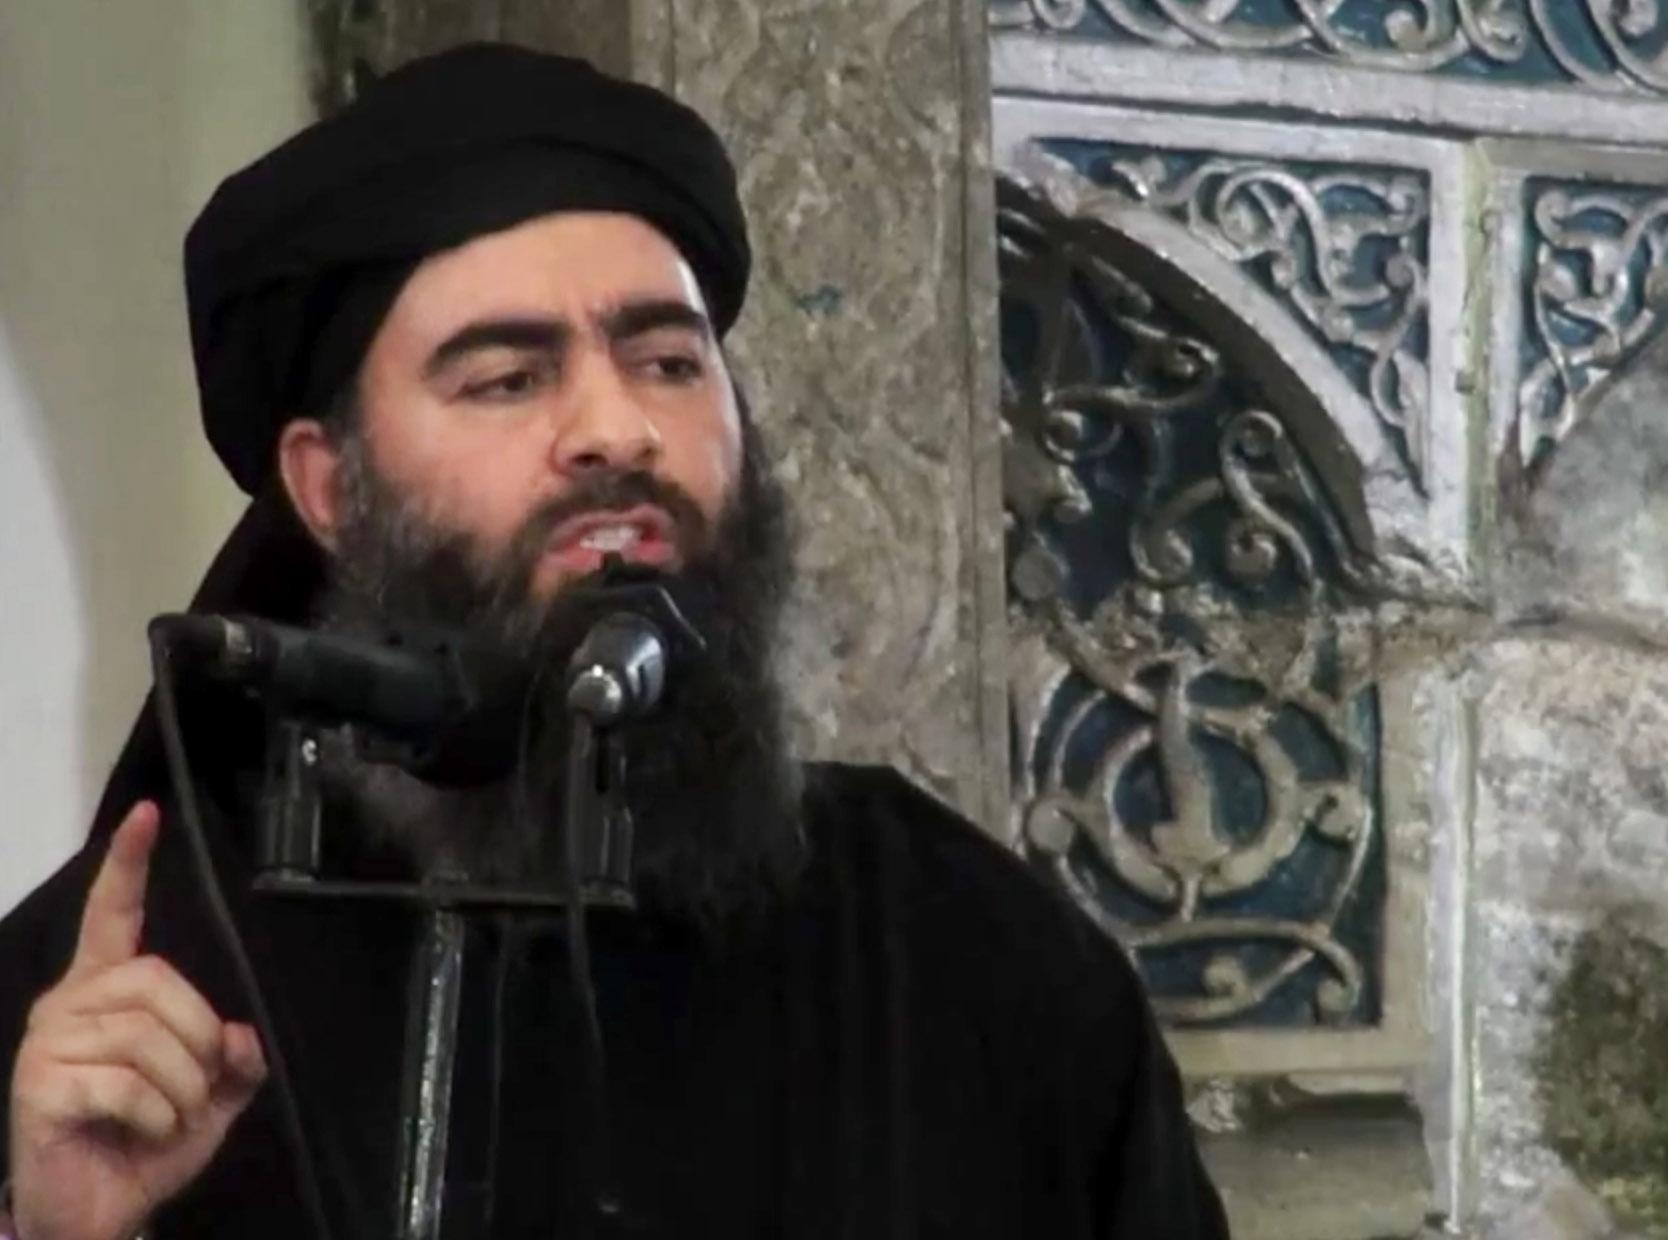 How Islamic is Islamic State group? Not very, experts say